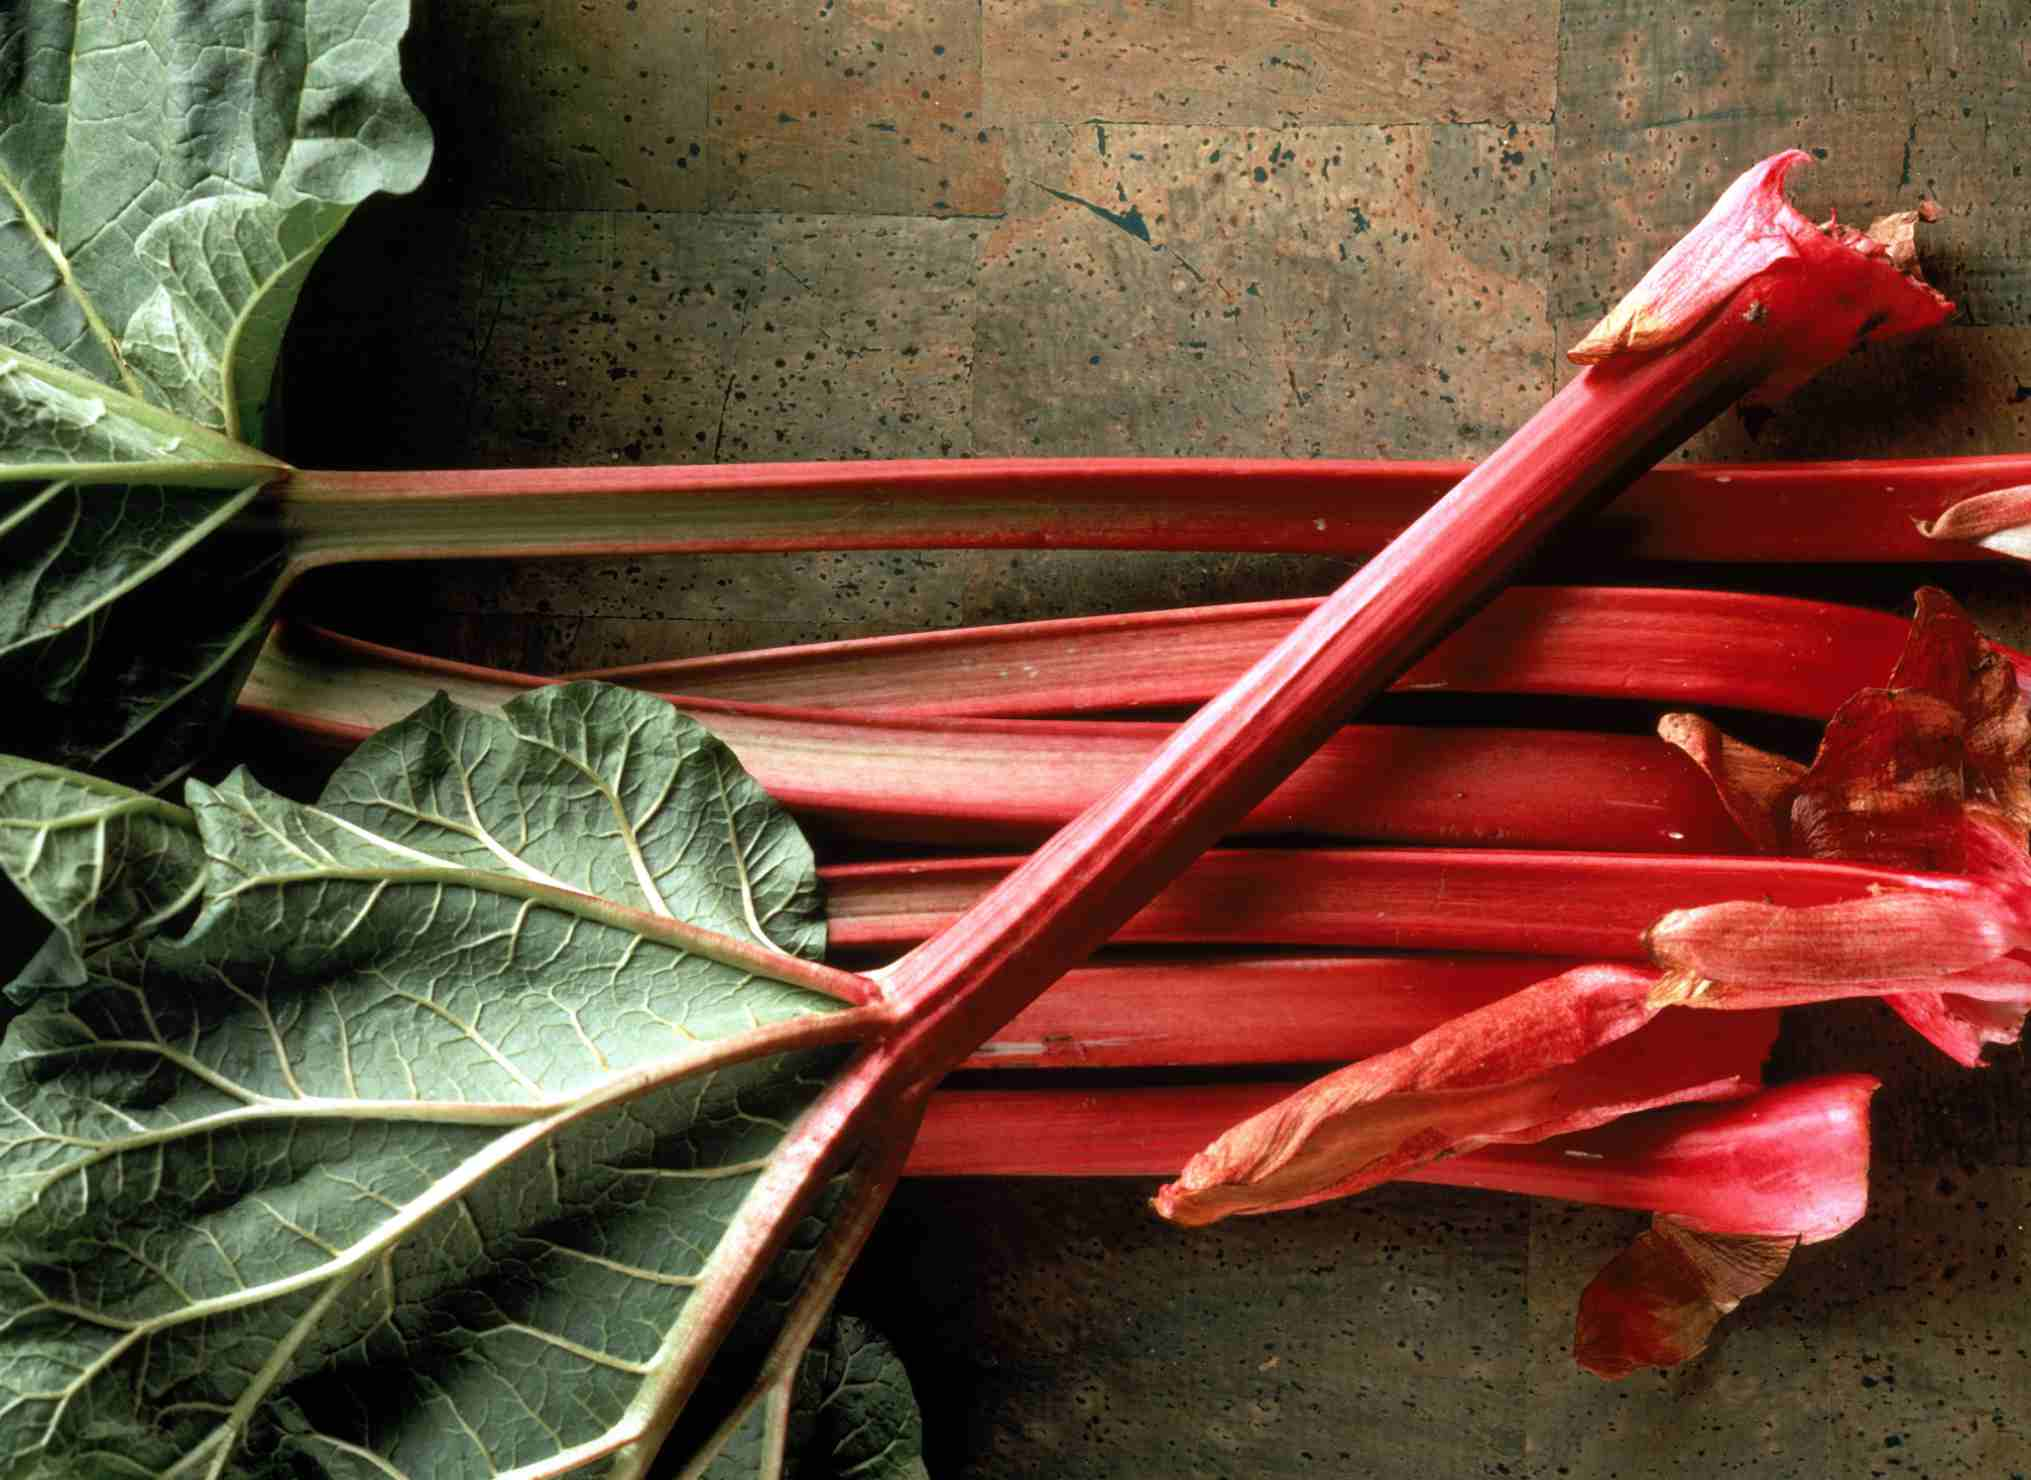 Rhubarb is high in calciun.